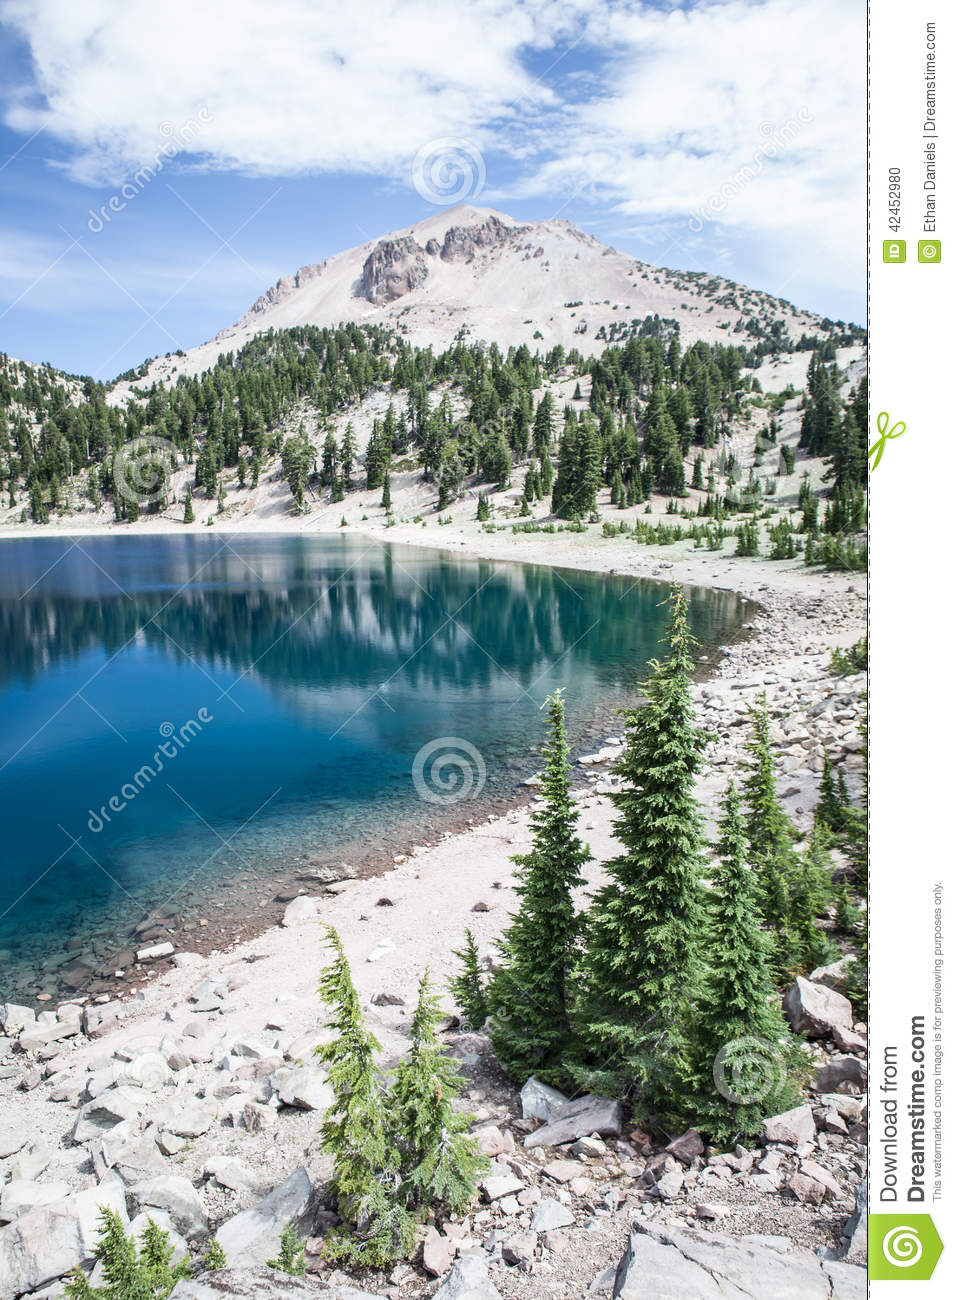 Mountainsee 2